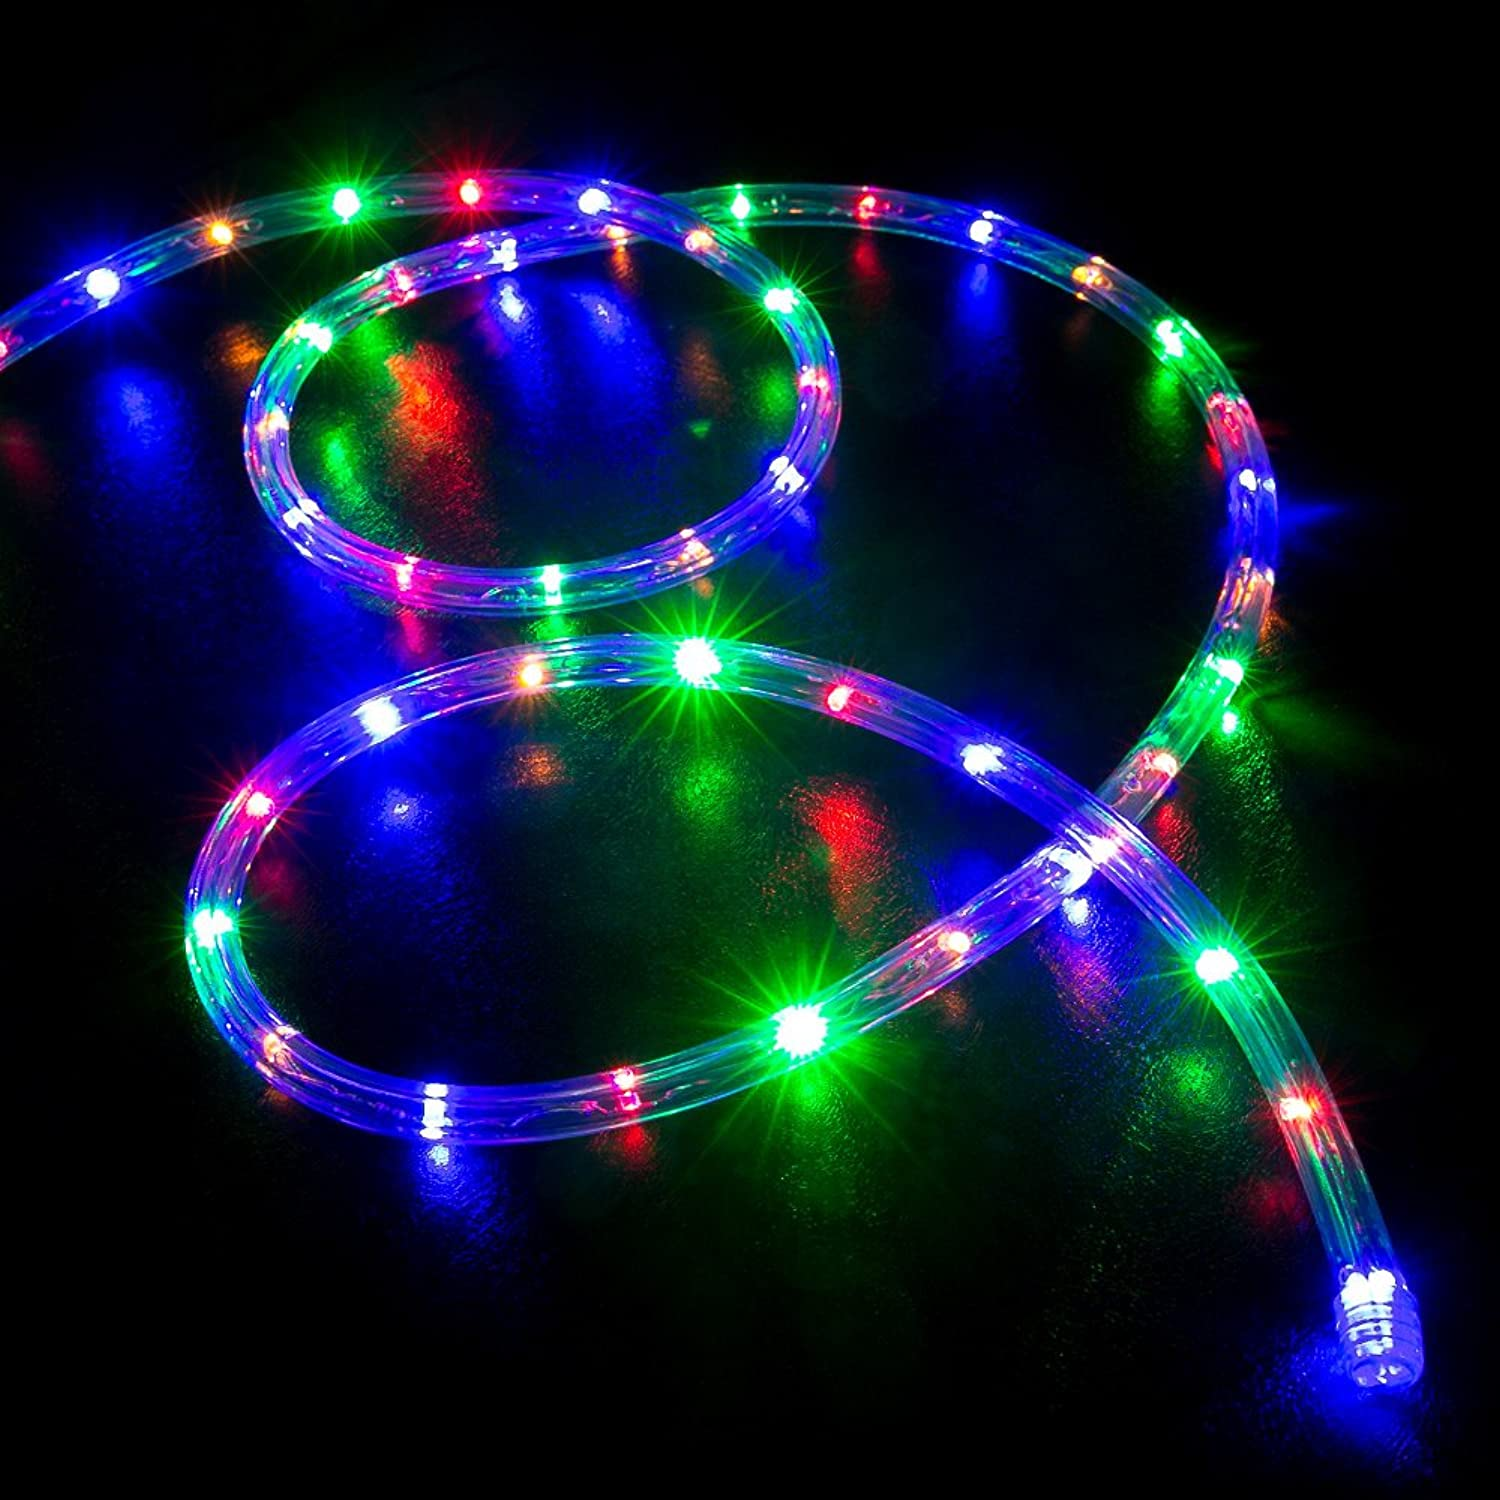 WYZworks 150' feet Multi-RGB LED Rope Lights - Flexible 2 Wire Accent Holiday Christmas Party Decoration Lighting   UL Certified